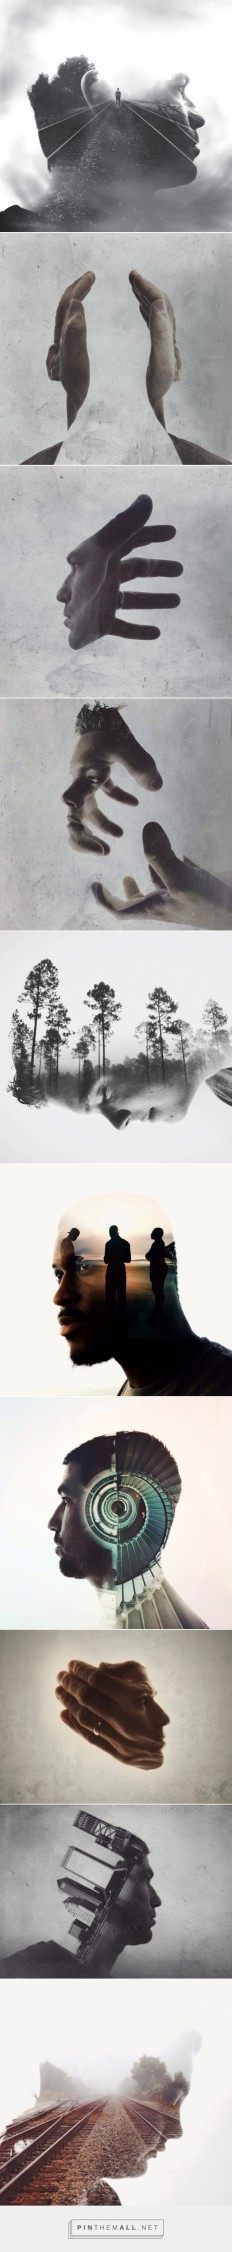 Double Exposure Portraits by Brandon Kidwell | Inspiration Grid | Design Inspiration... - a grouped images picture - Pin Them All